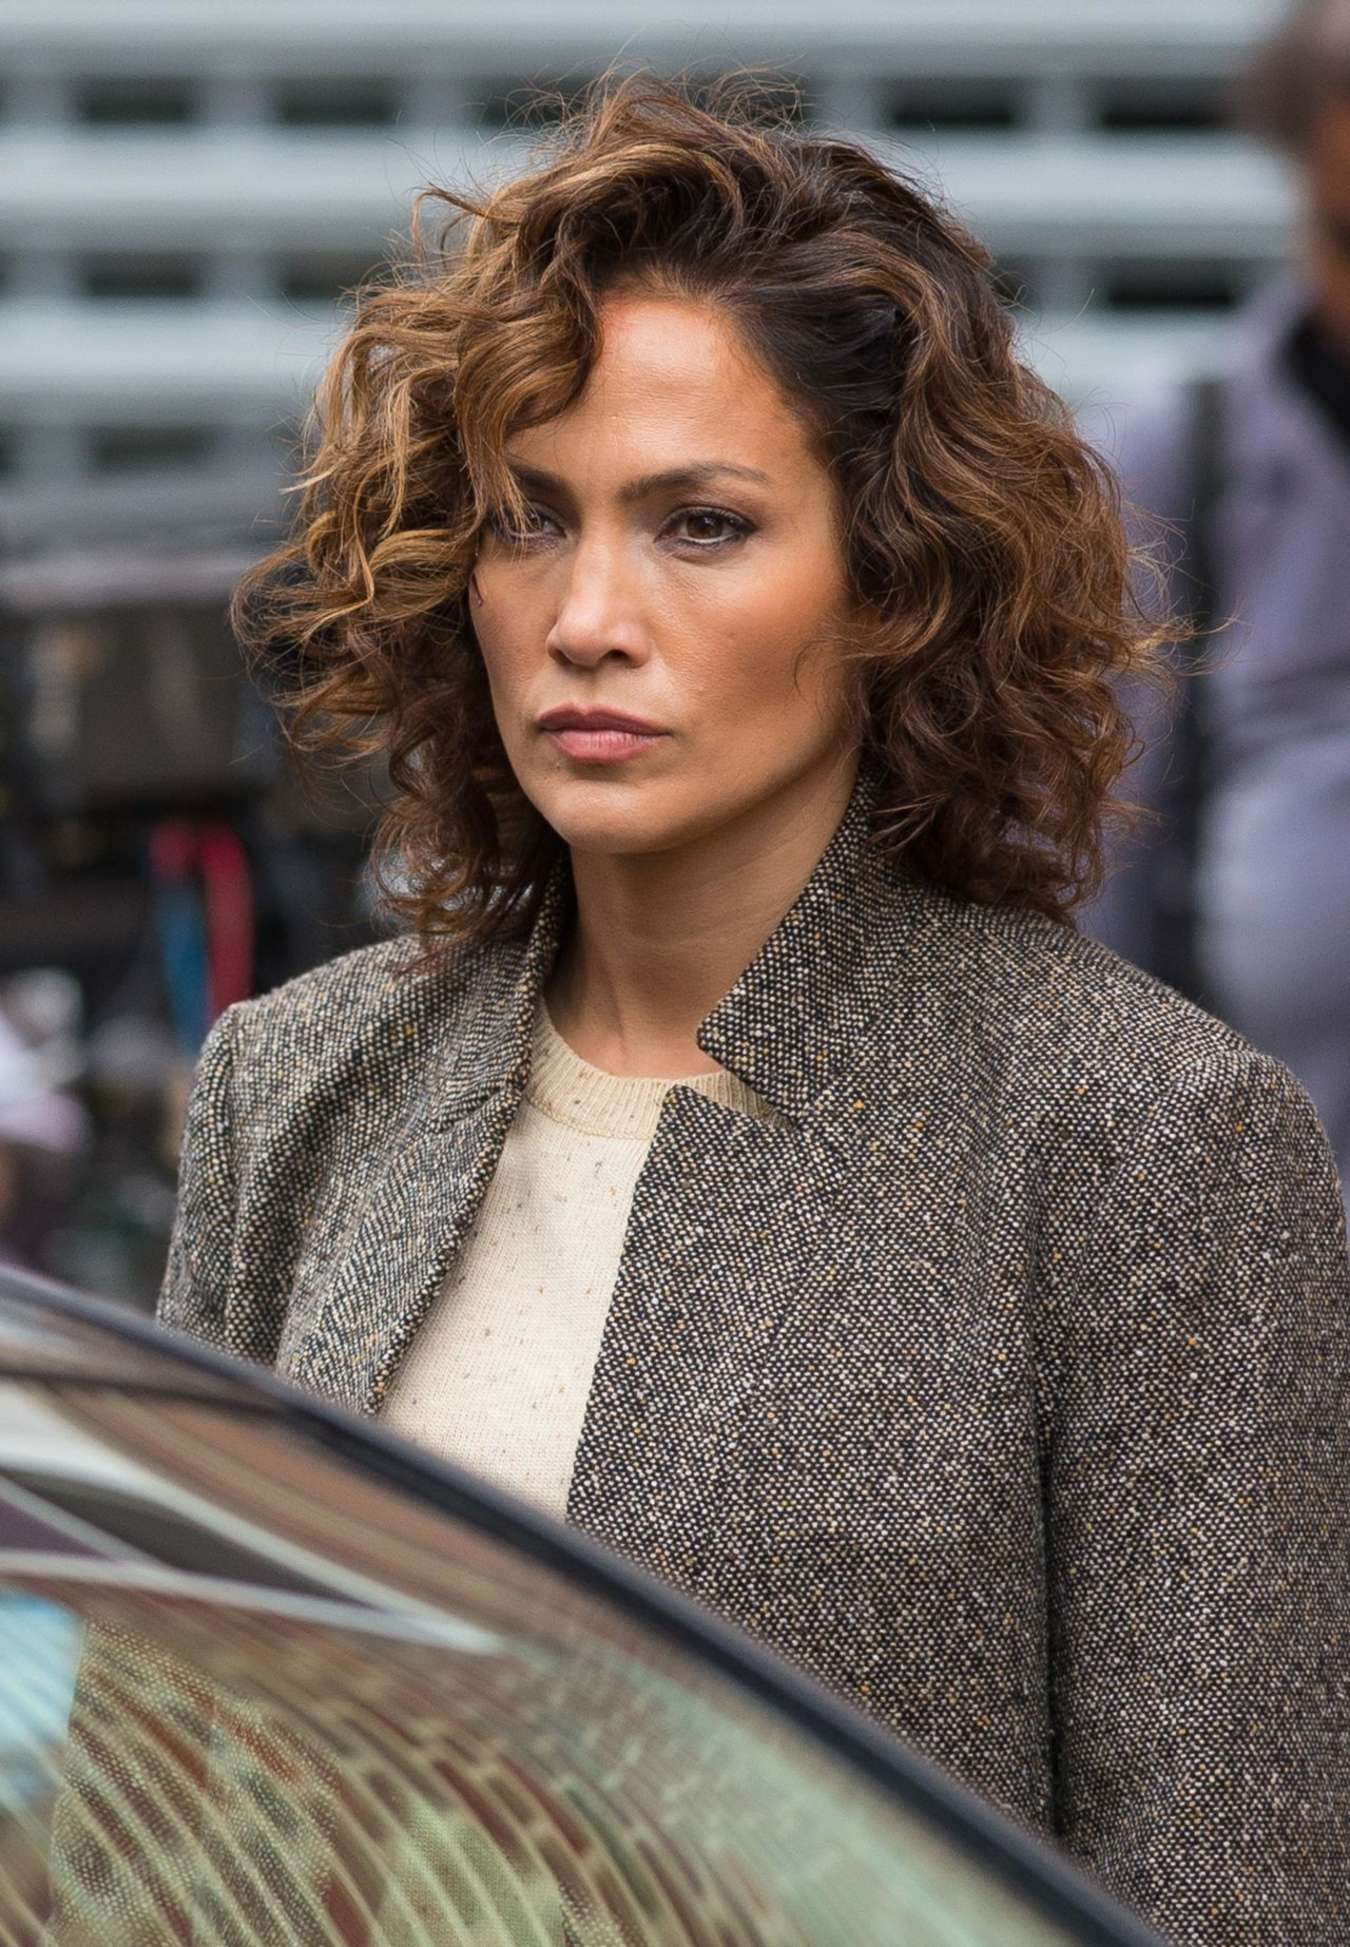 Jennifer Lopez On The Set Of Shades Of Blue In NYC